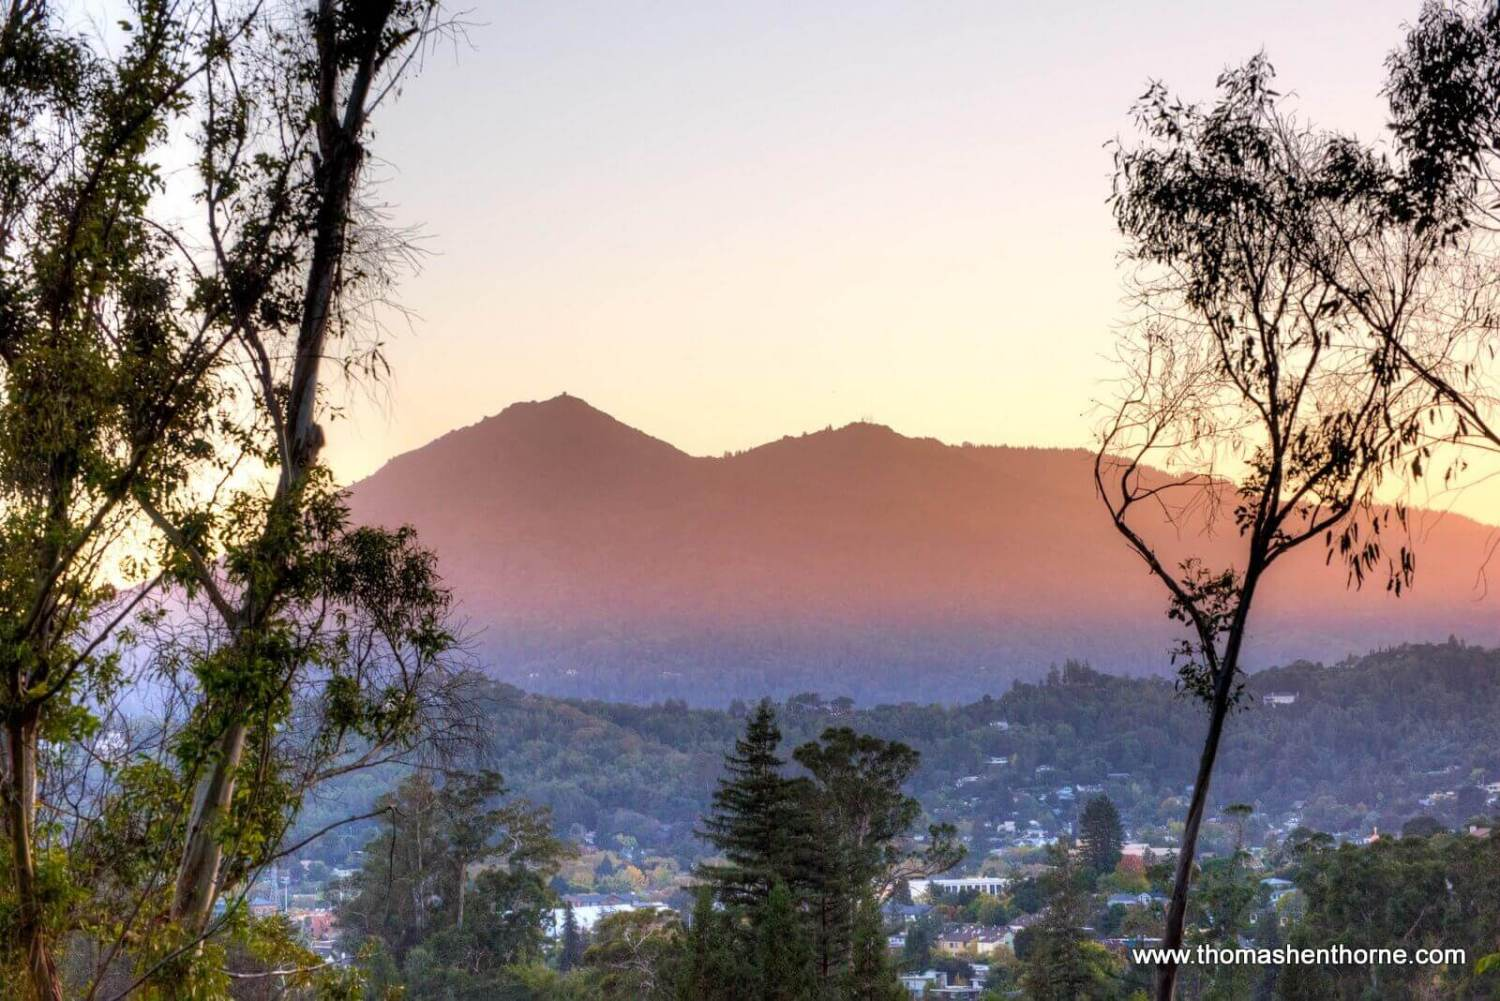 View of Mt. Tam from 215 Locust